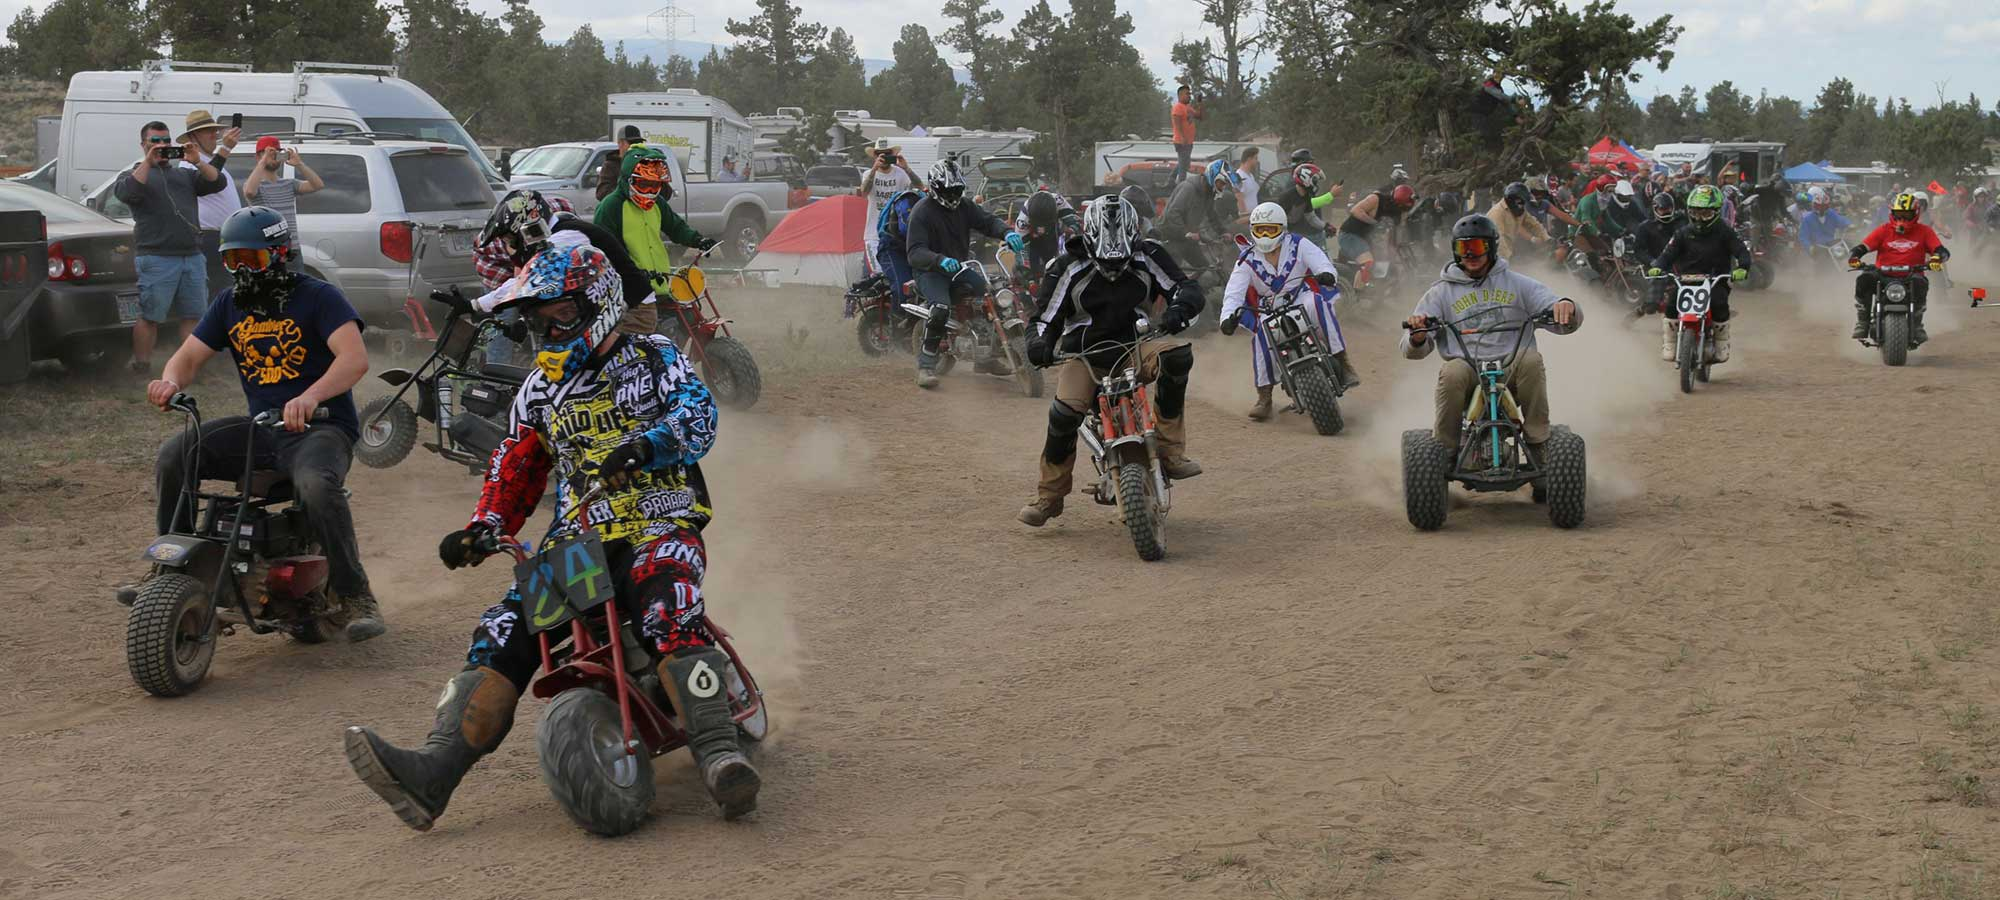 The High Desert At The Oregon Gambler Mini Bike Enduro